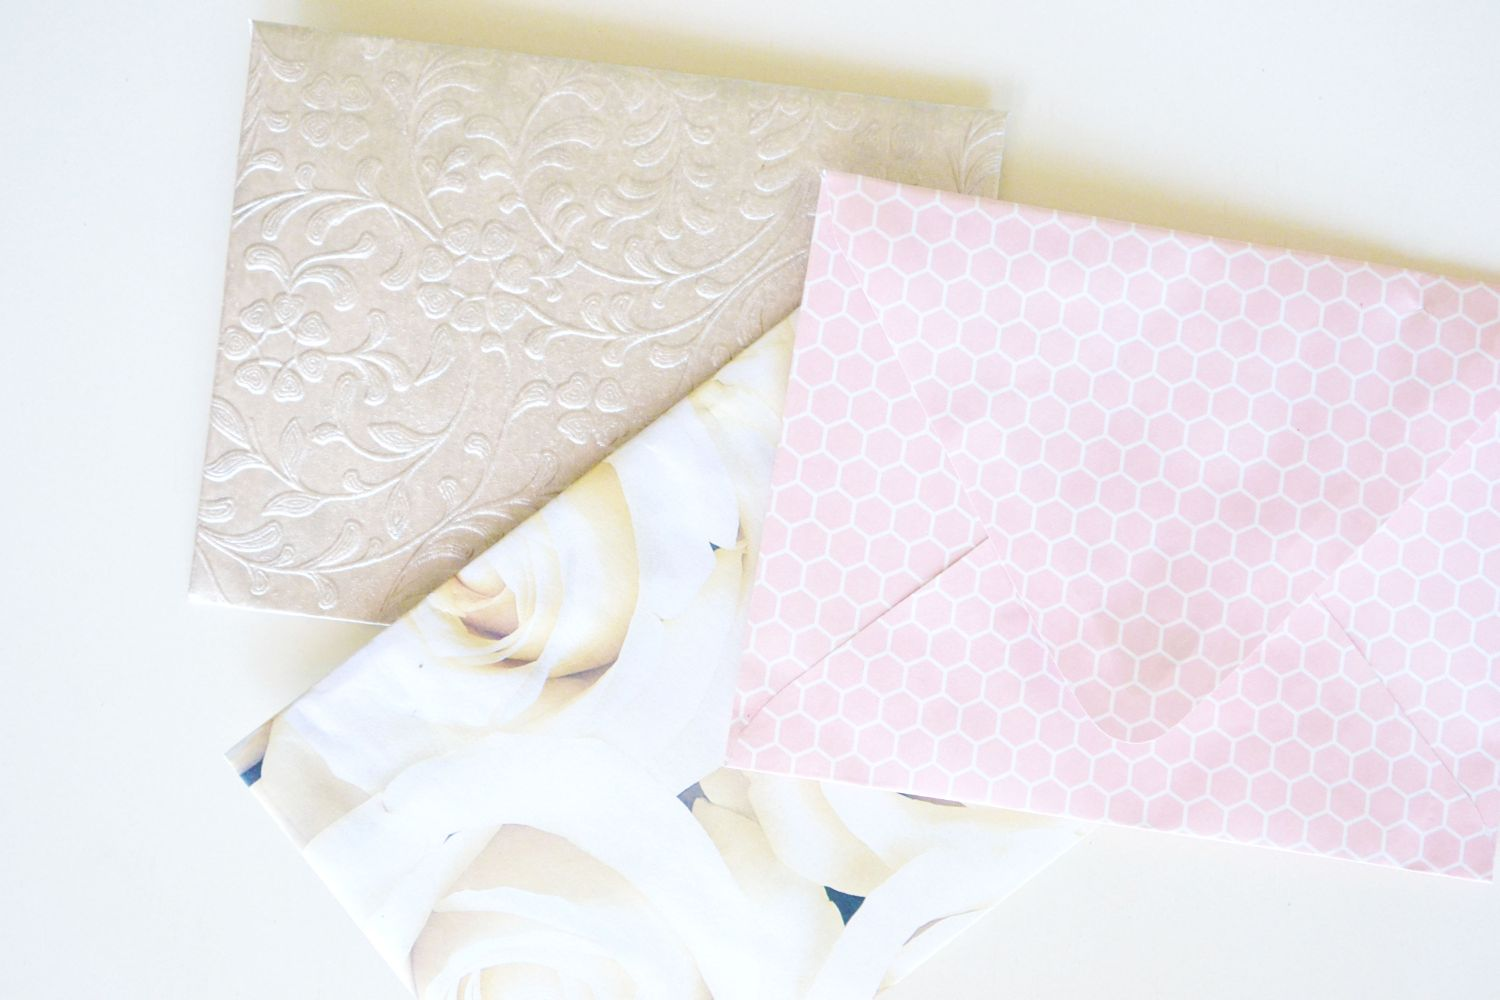 Glitter Lined Envelopes Craft